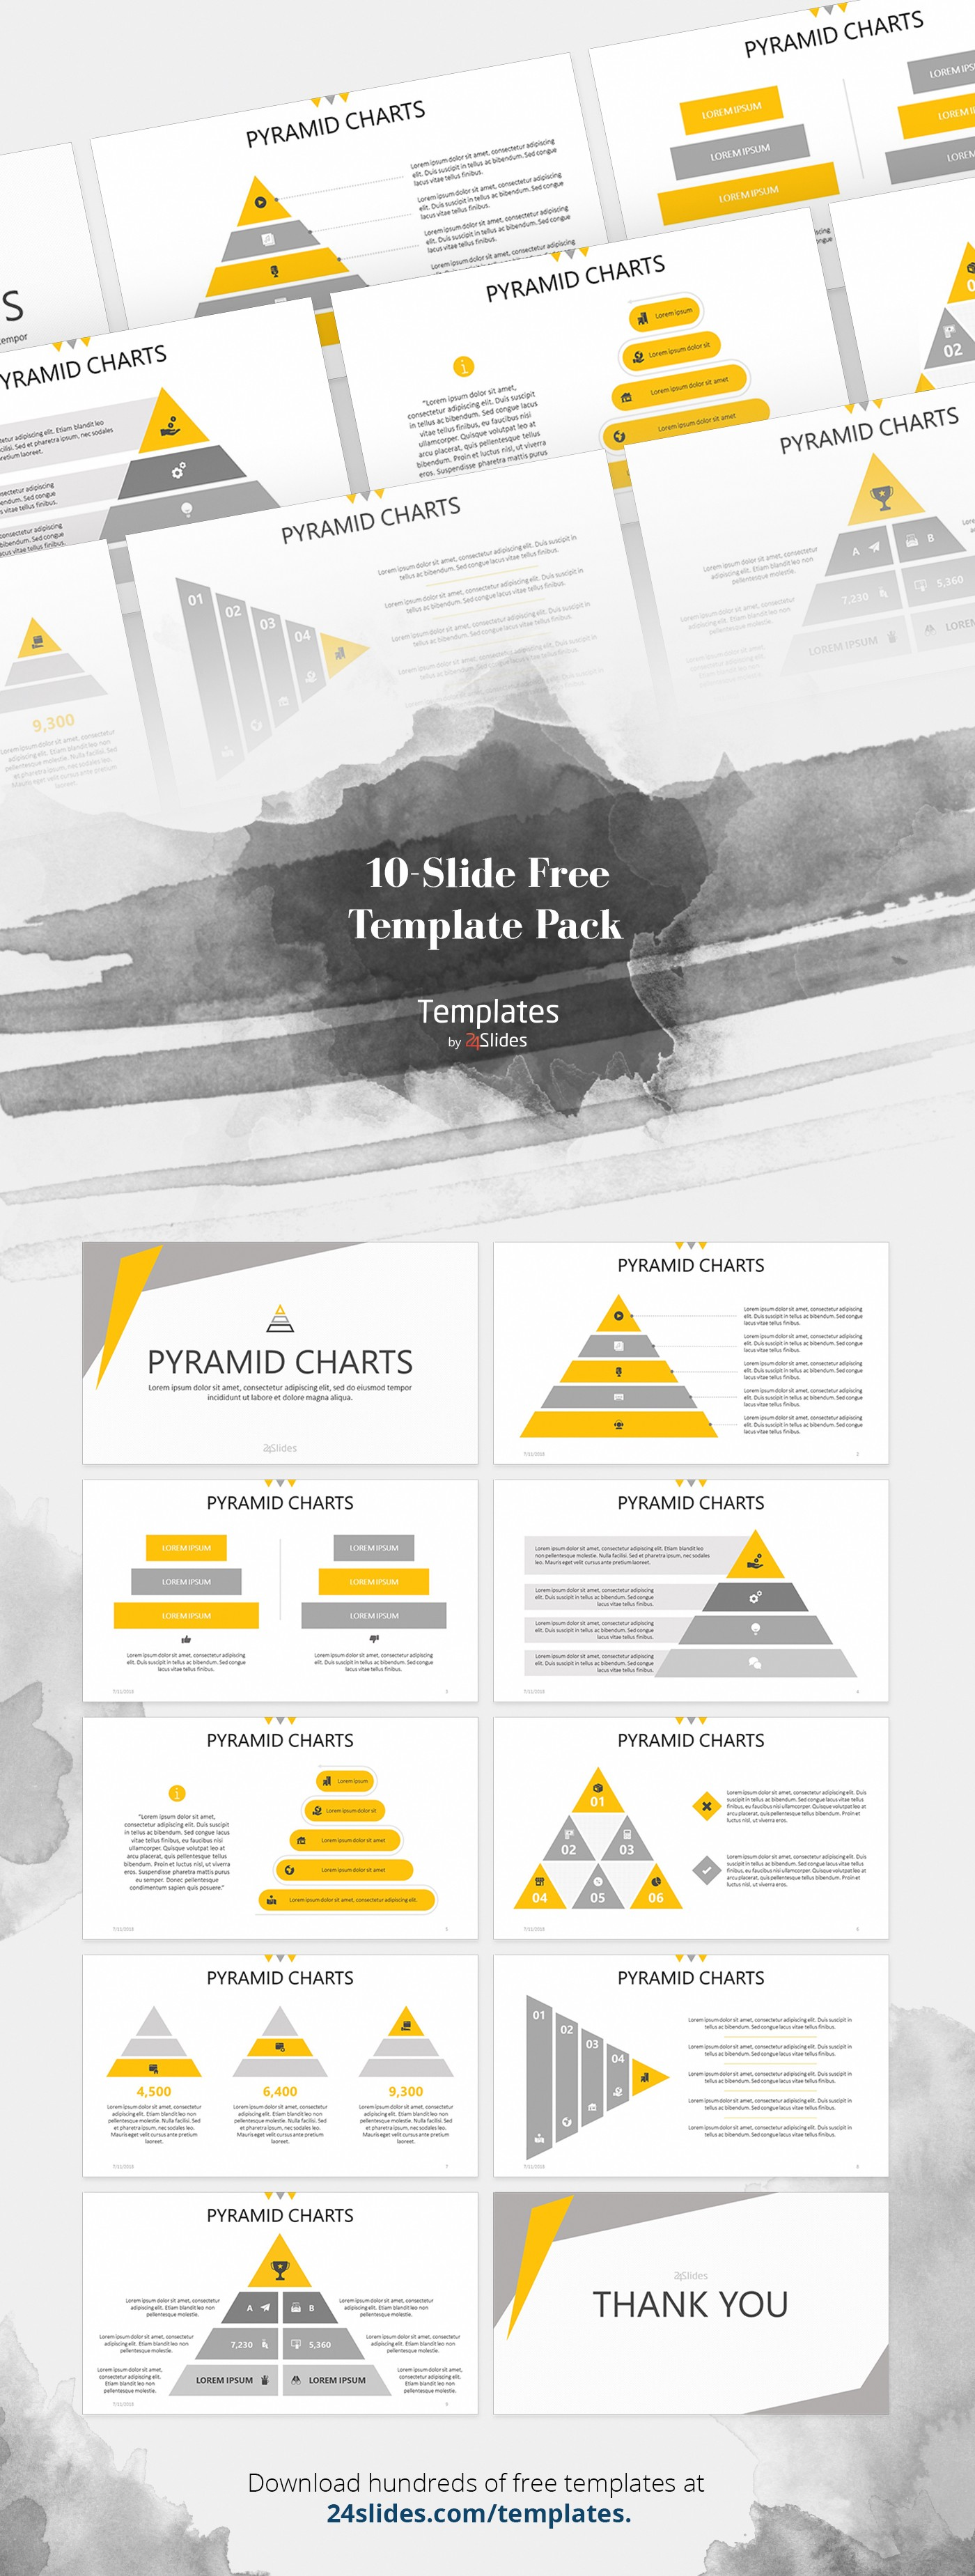 Pyramid Chart Presentation Template Free Download Diagram